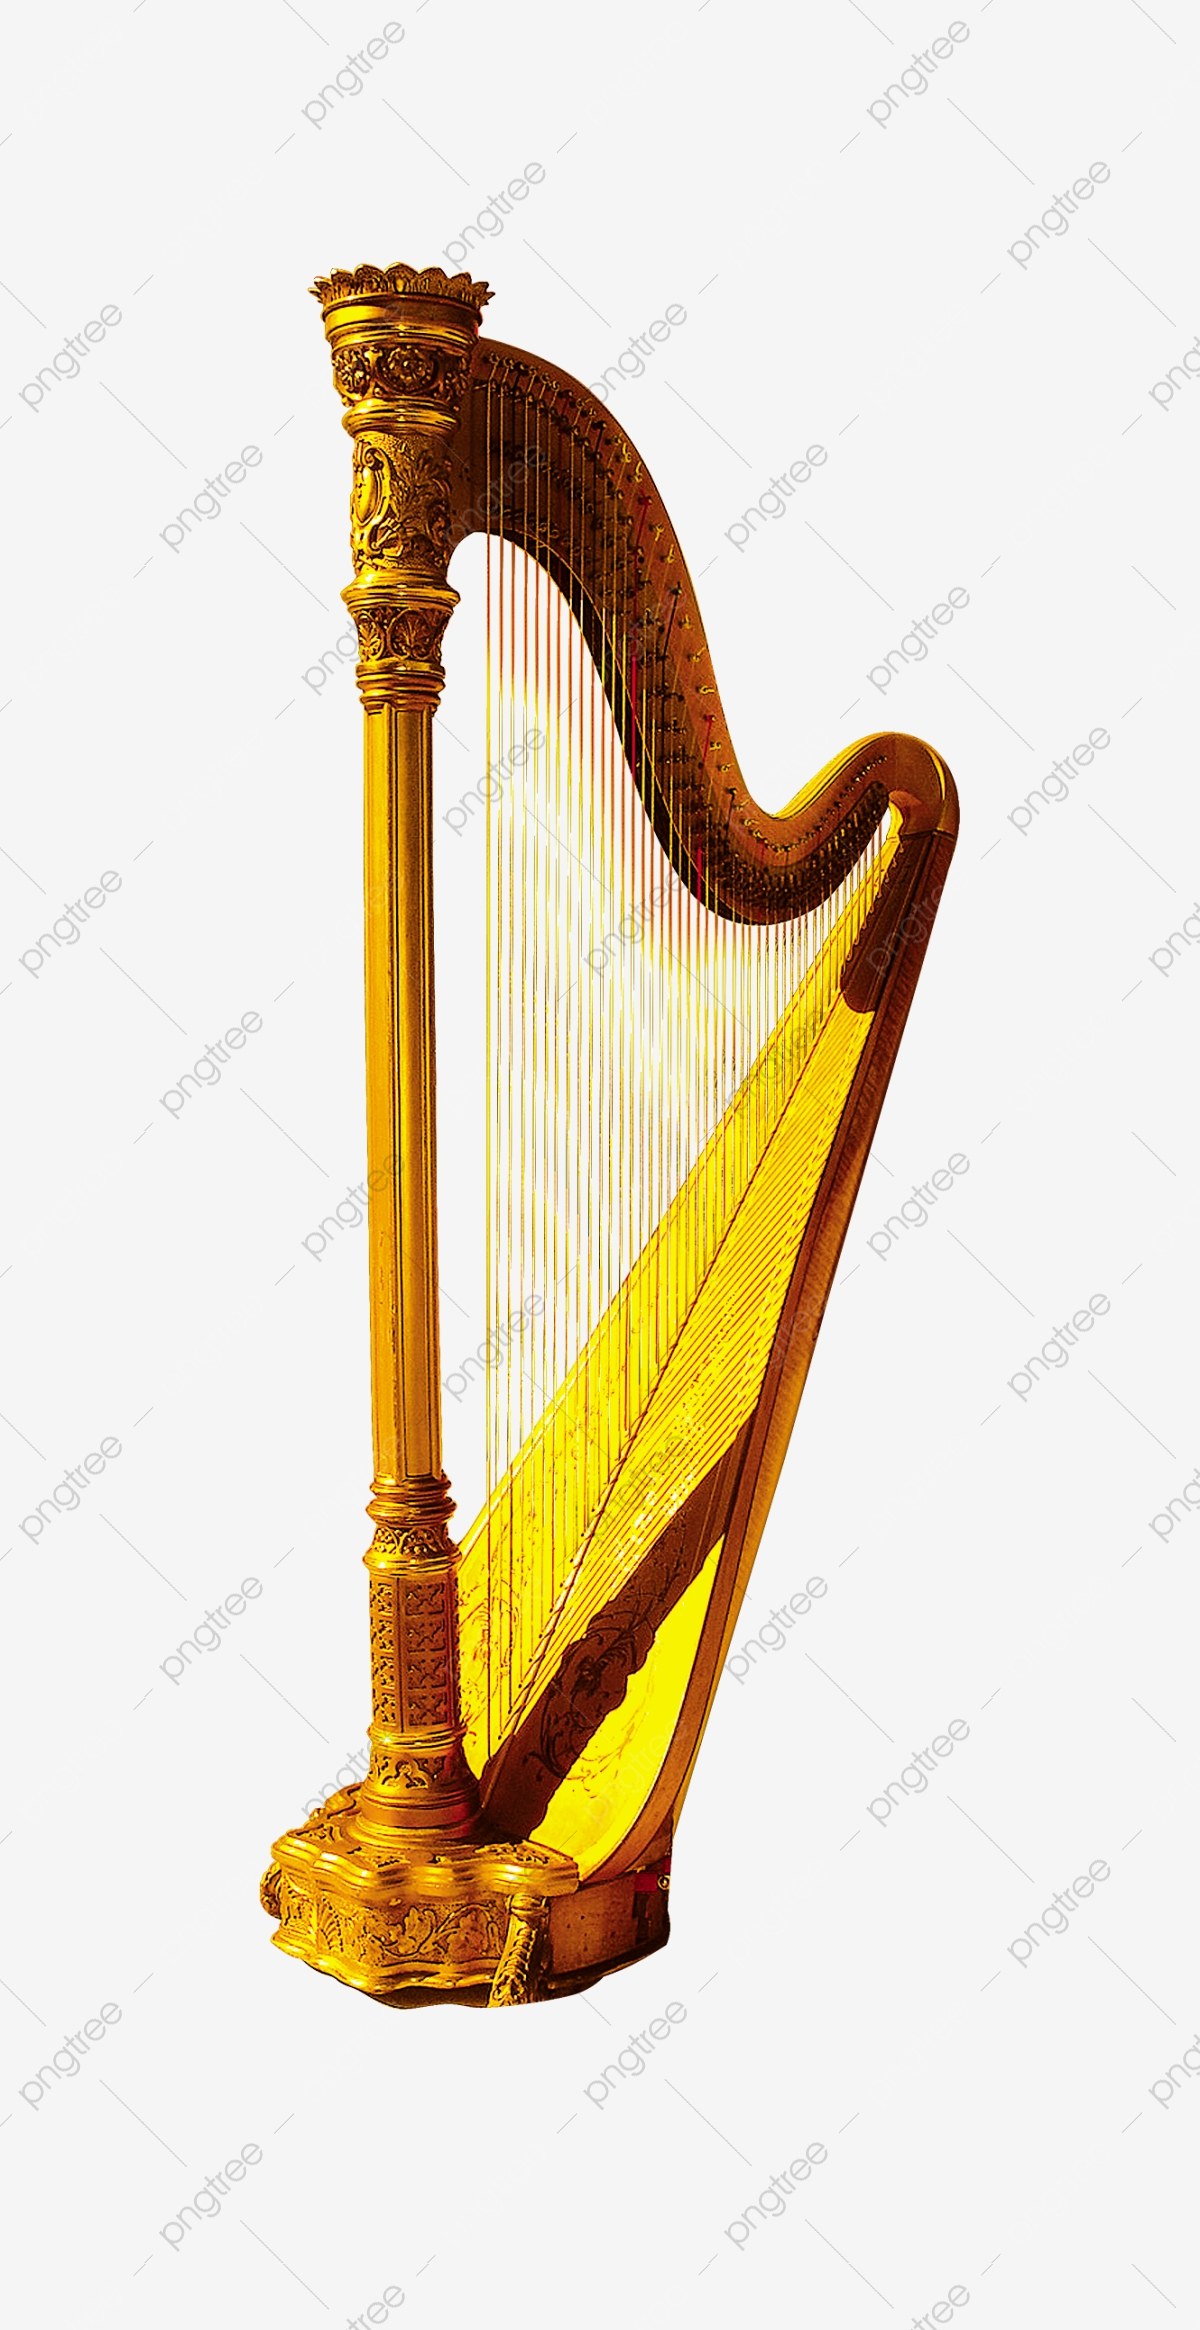 Harp, Musical Instruments, Music PNG Transparent Image and Clipart.